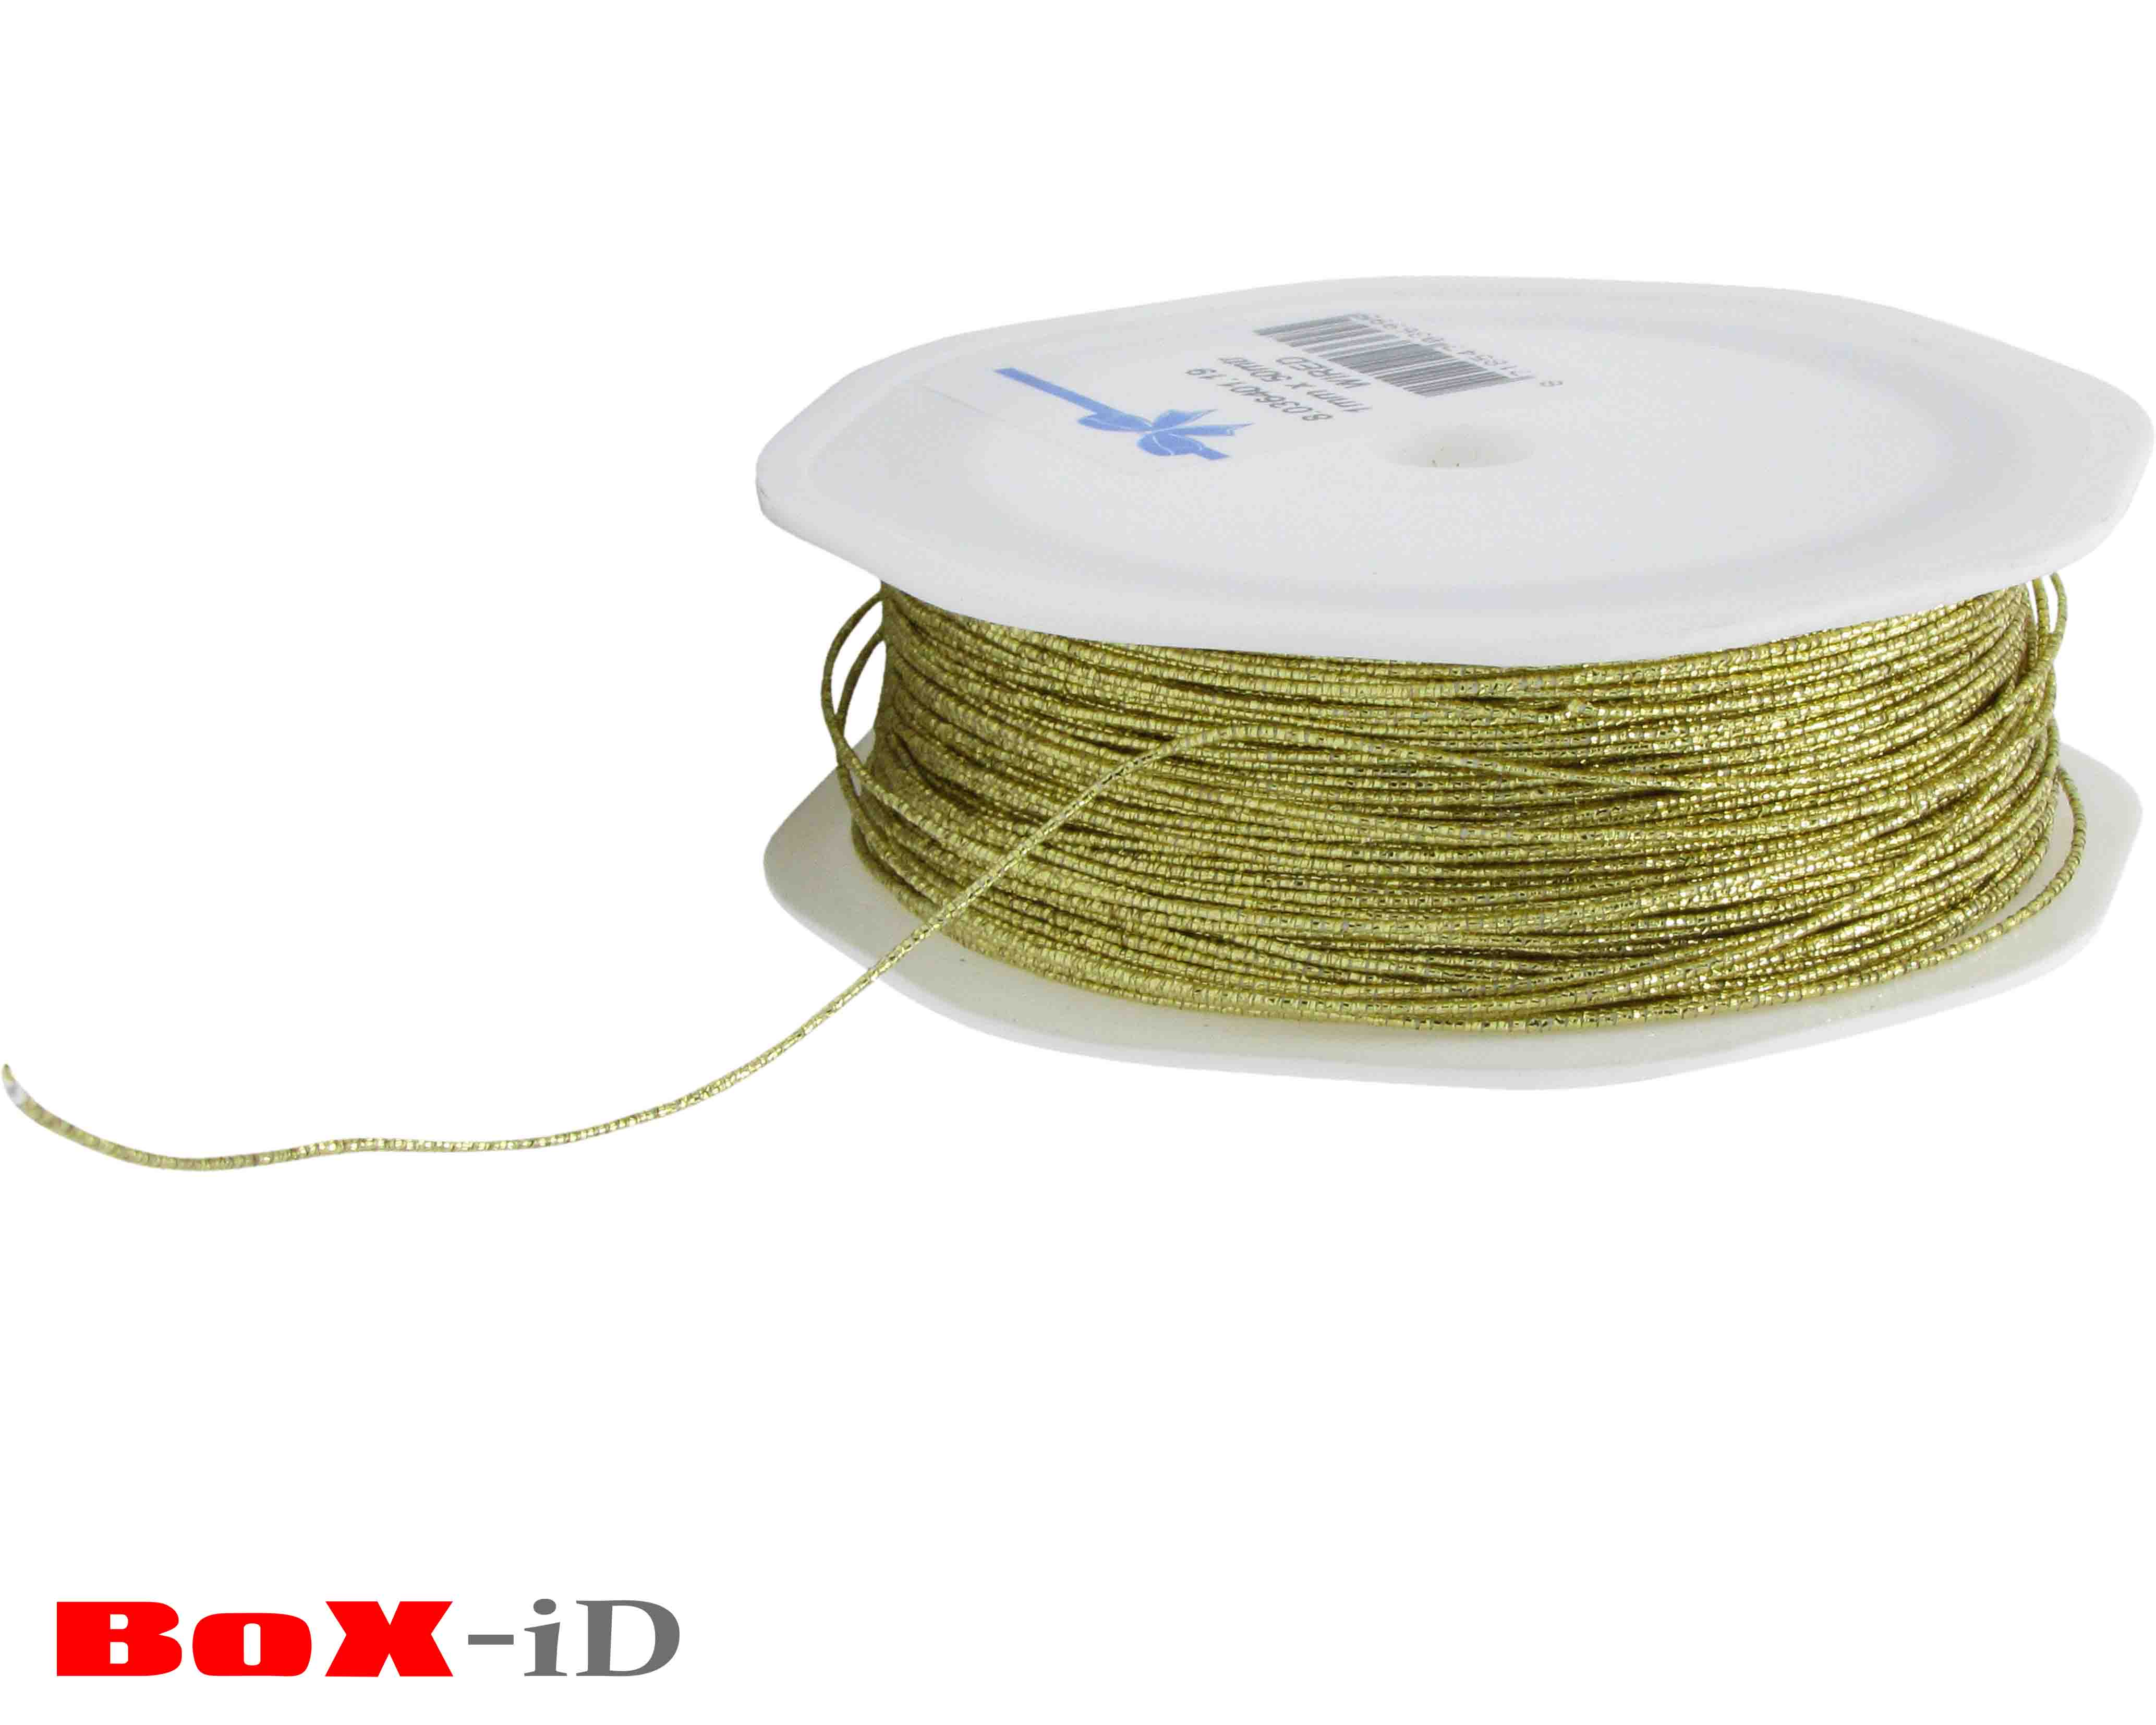 Metal cord wired gold 1mm x 50m